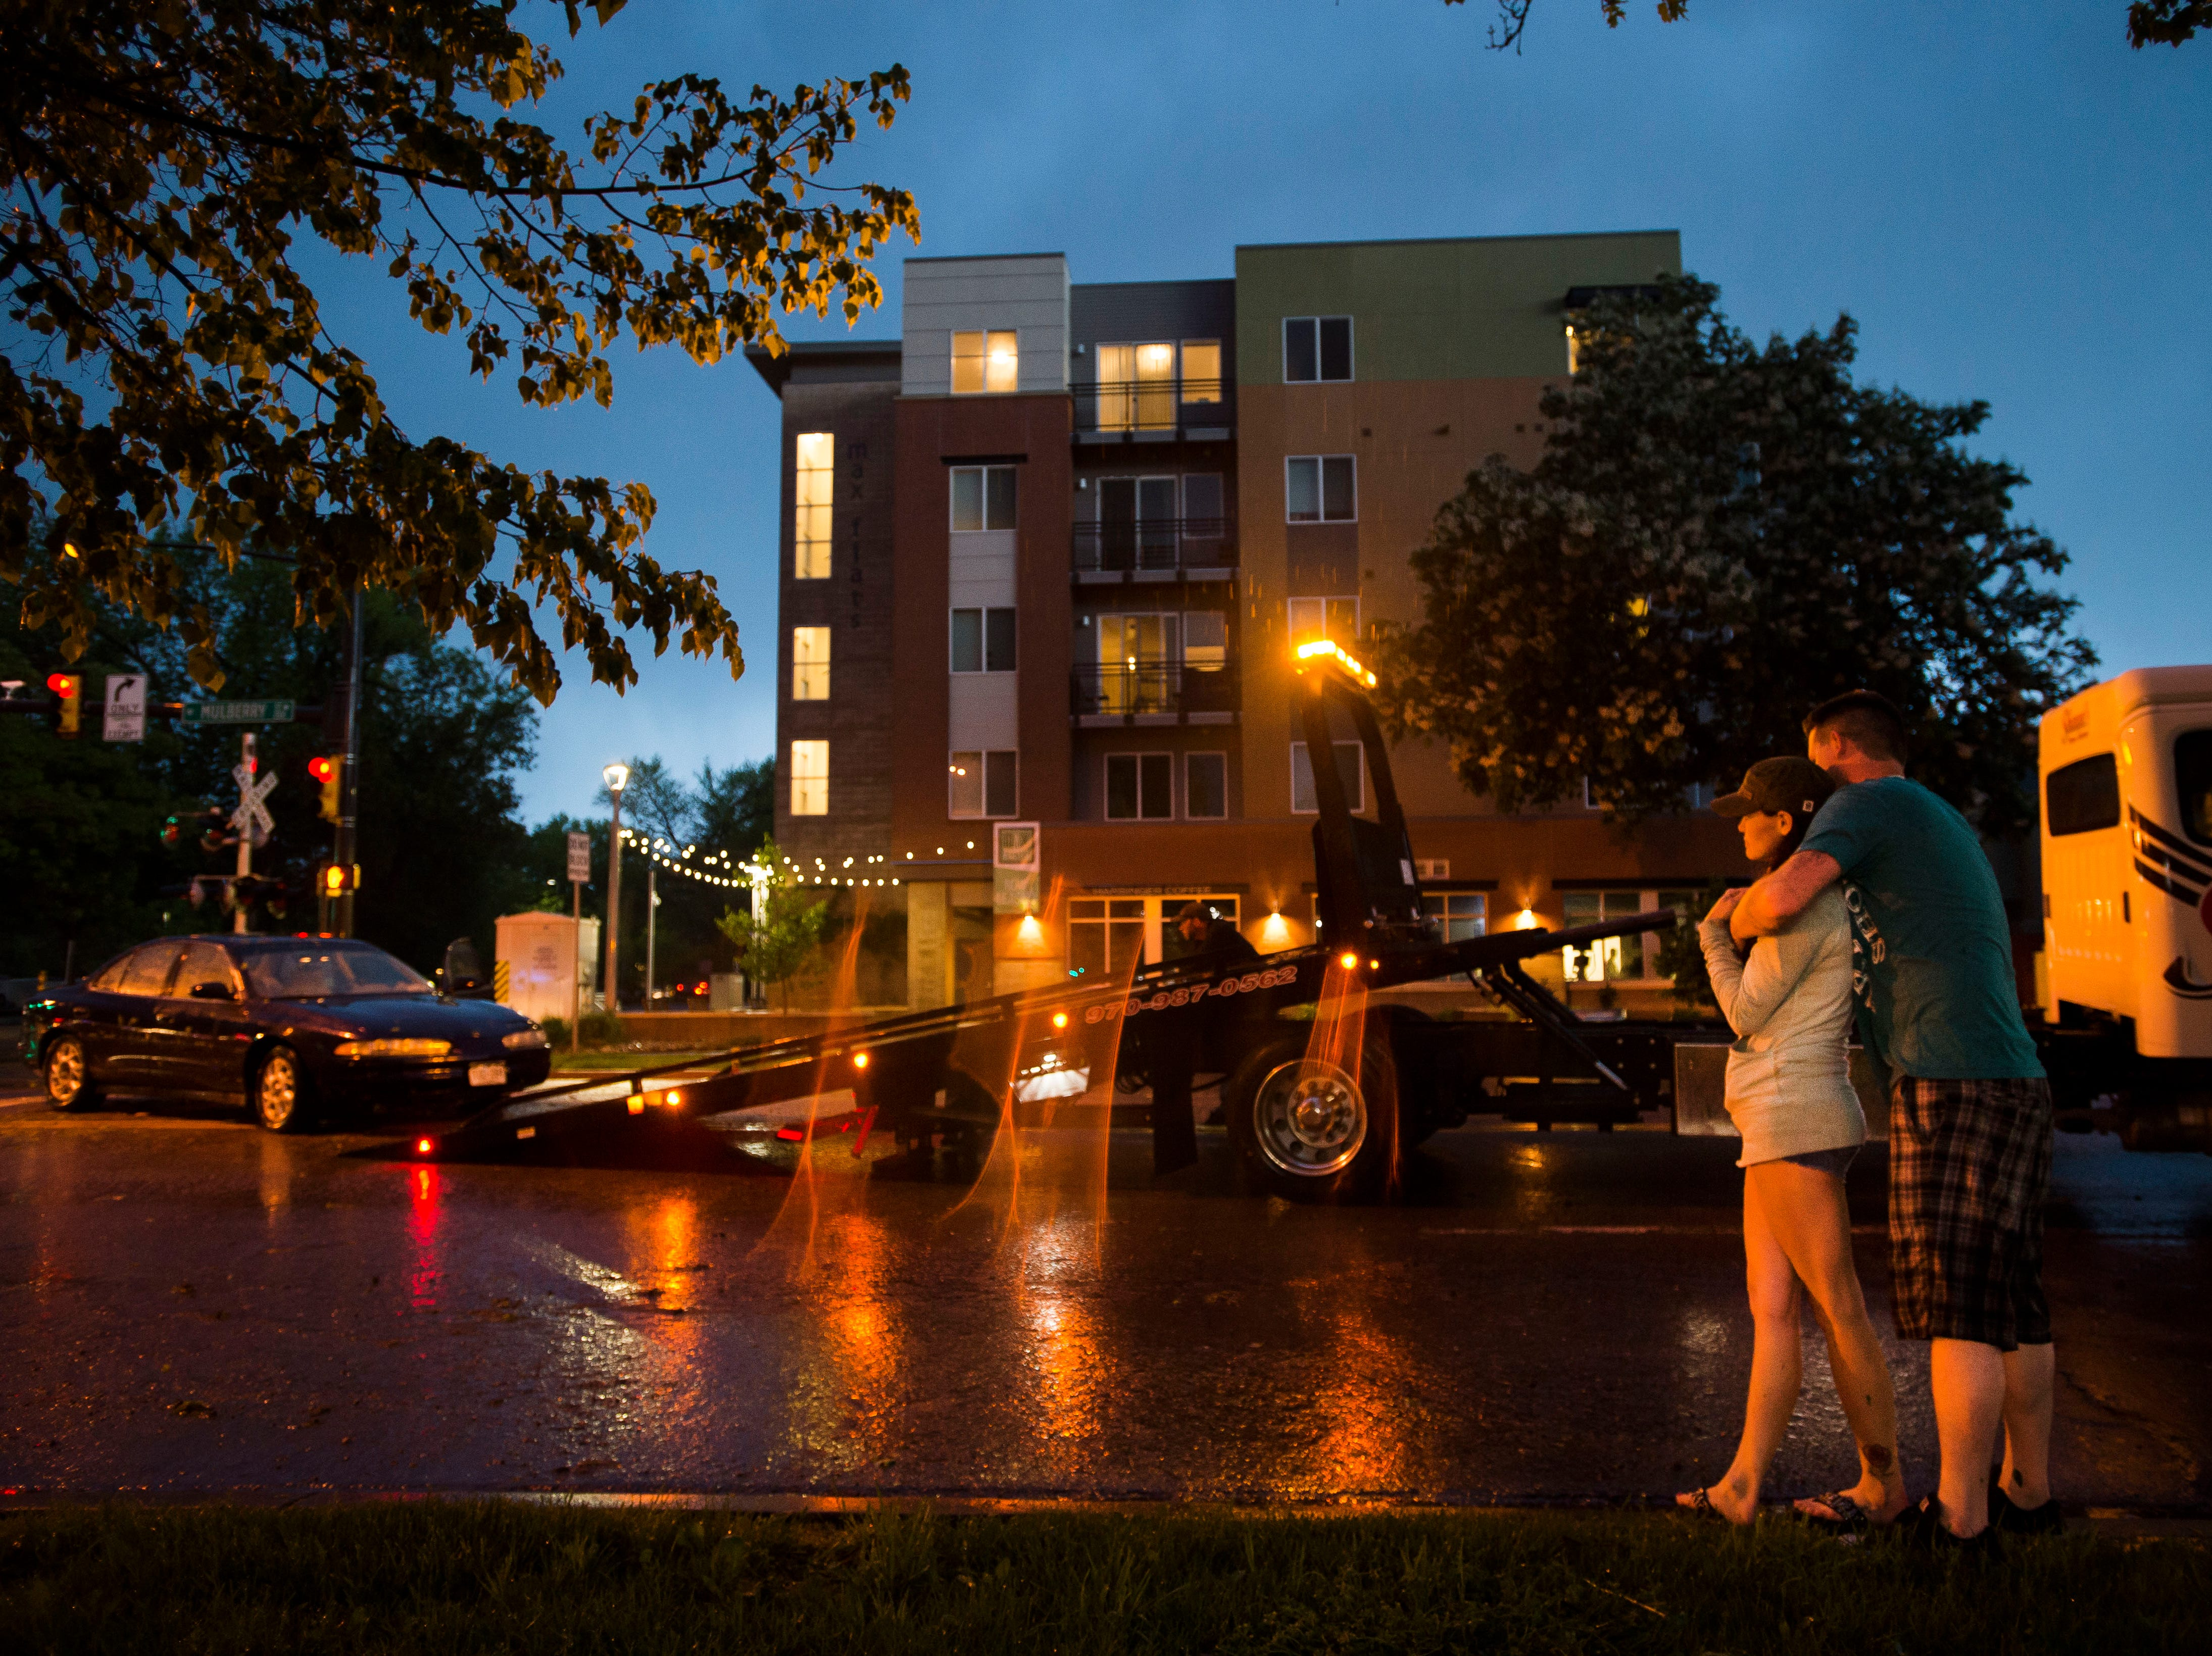 Katie Leech and her fiancŽ Mike Riley wait for he flooded car to be towed on Tuesday, May 22, 2018, at Mulberry and Mason Street in Fort Collins, Colo. Leech had to evacuate her car with her two young children when it was flooded out at the intersection and were taken in by Schrader gas station employee Shawn Dhariwal, who gave them towels and shelter immediately after.